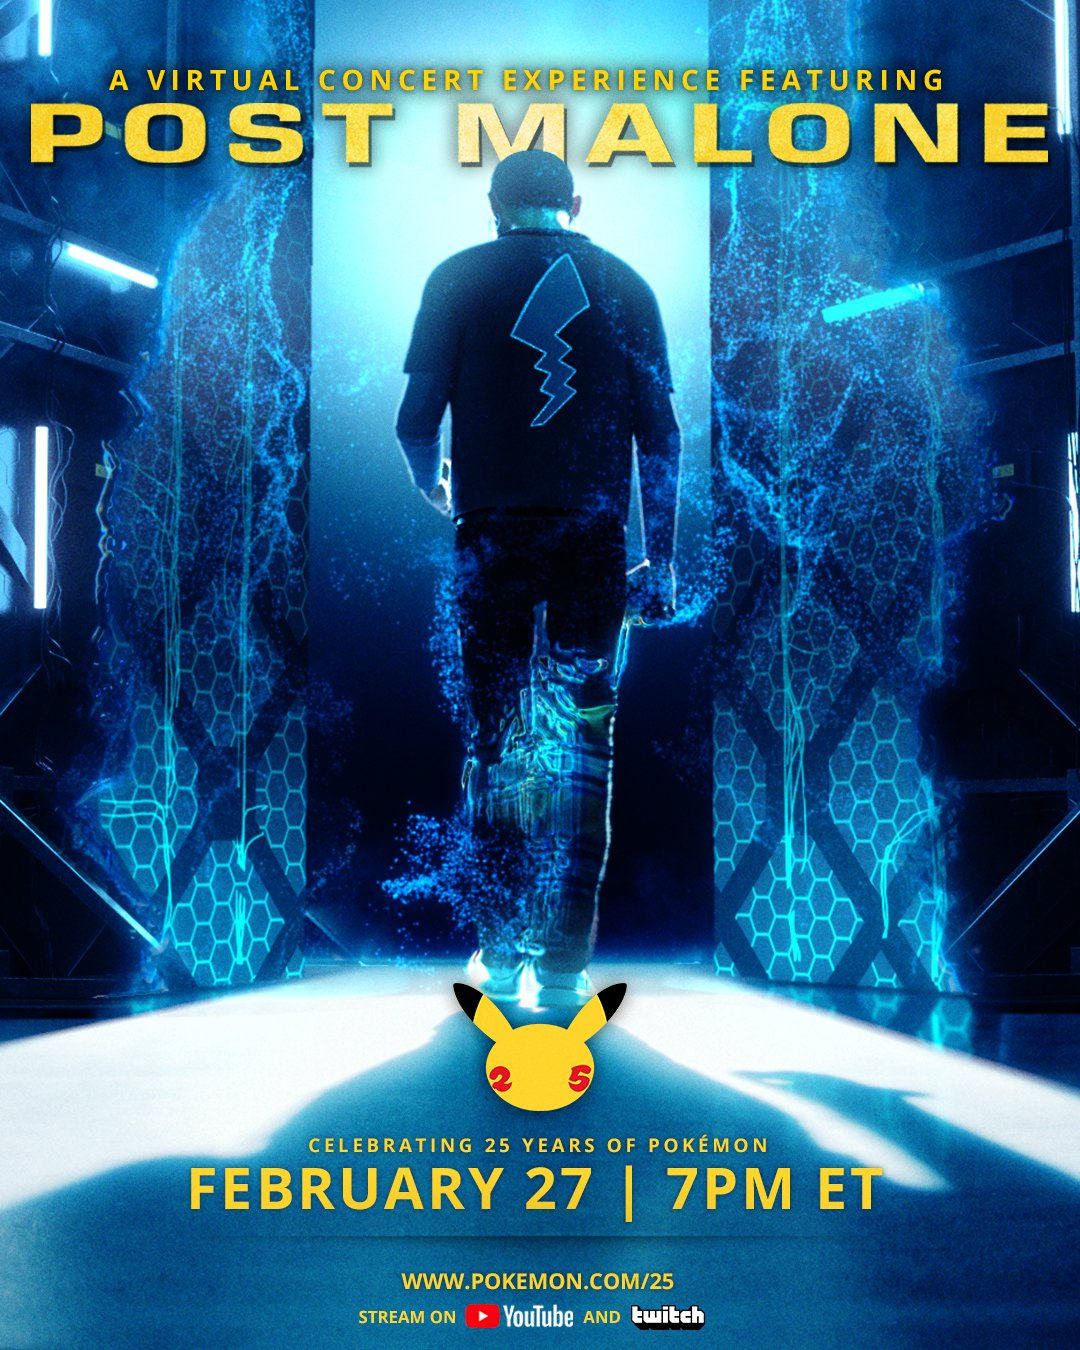 POKÉMON UNVEILS VIRTUAL MUSIC CONCERT WITH POST MALONE TO CELEBRATE 25TH ANNIVERSARY